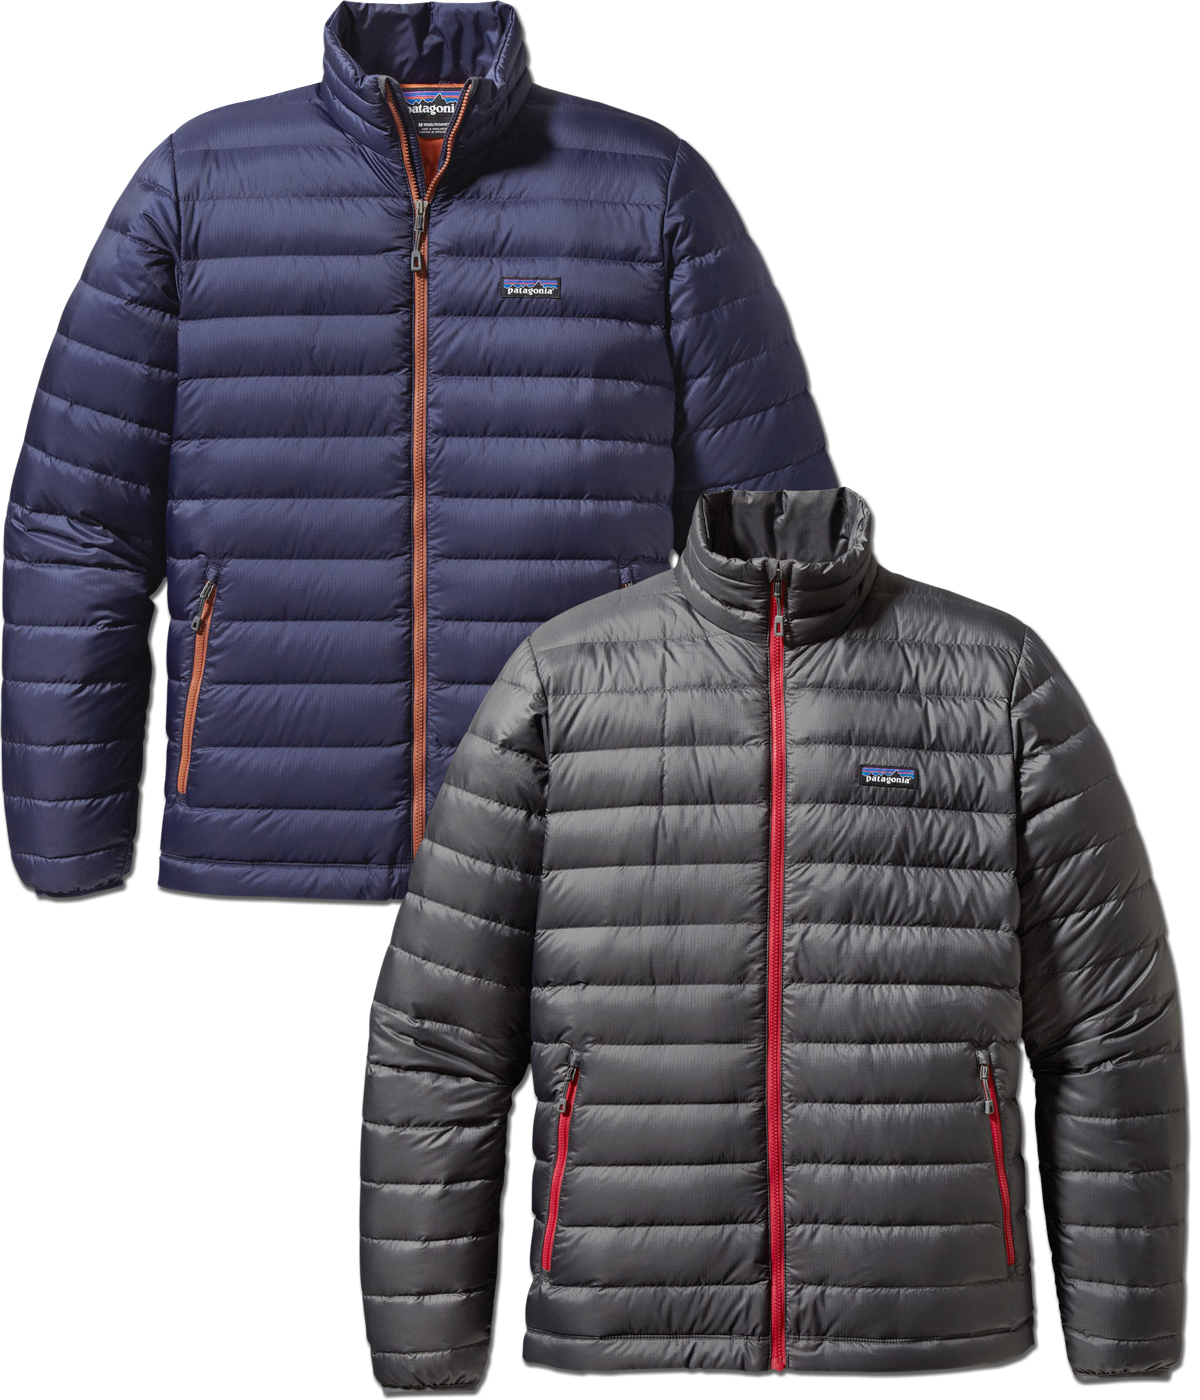 Mens Patagonia Down Jacket Designer Jackets